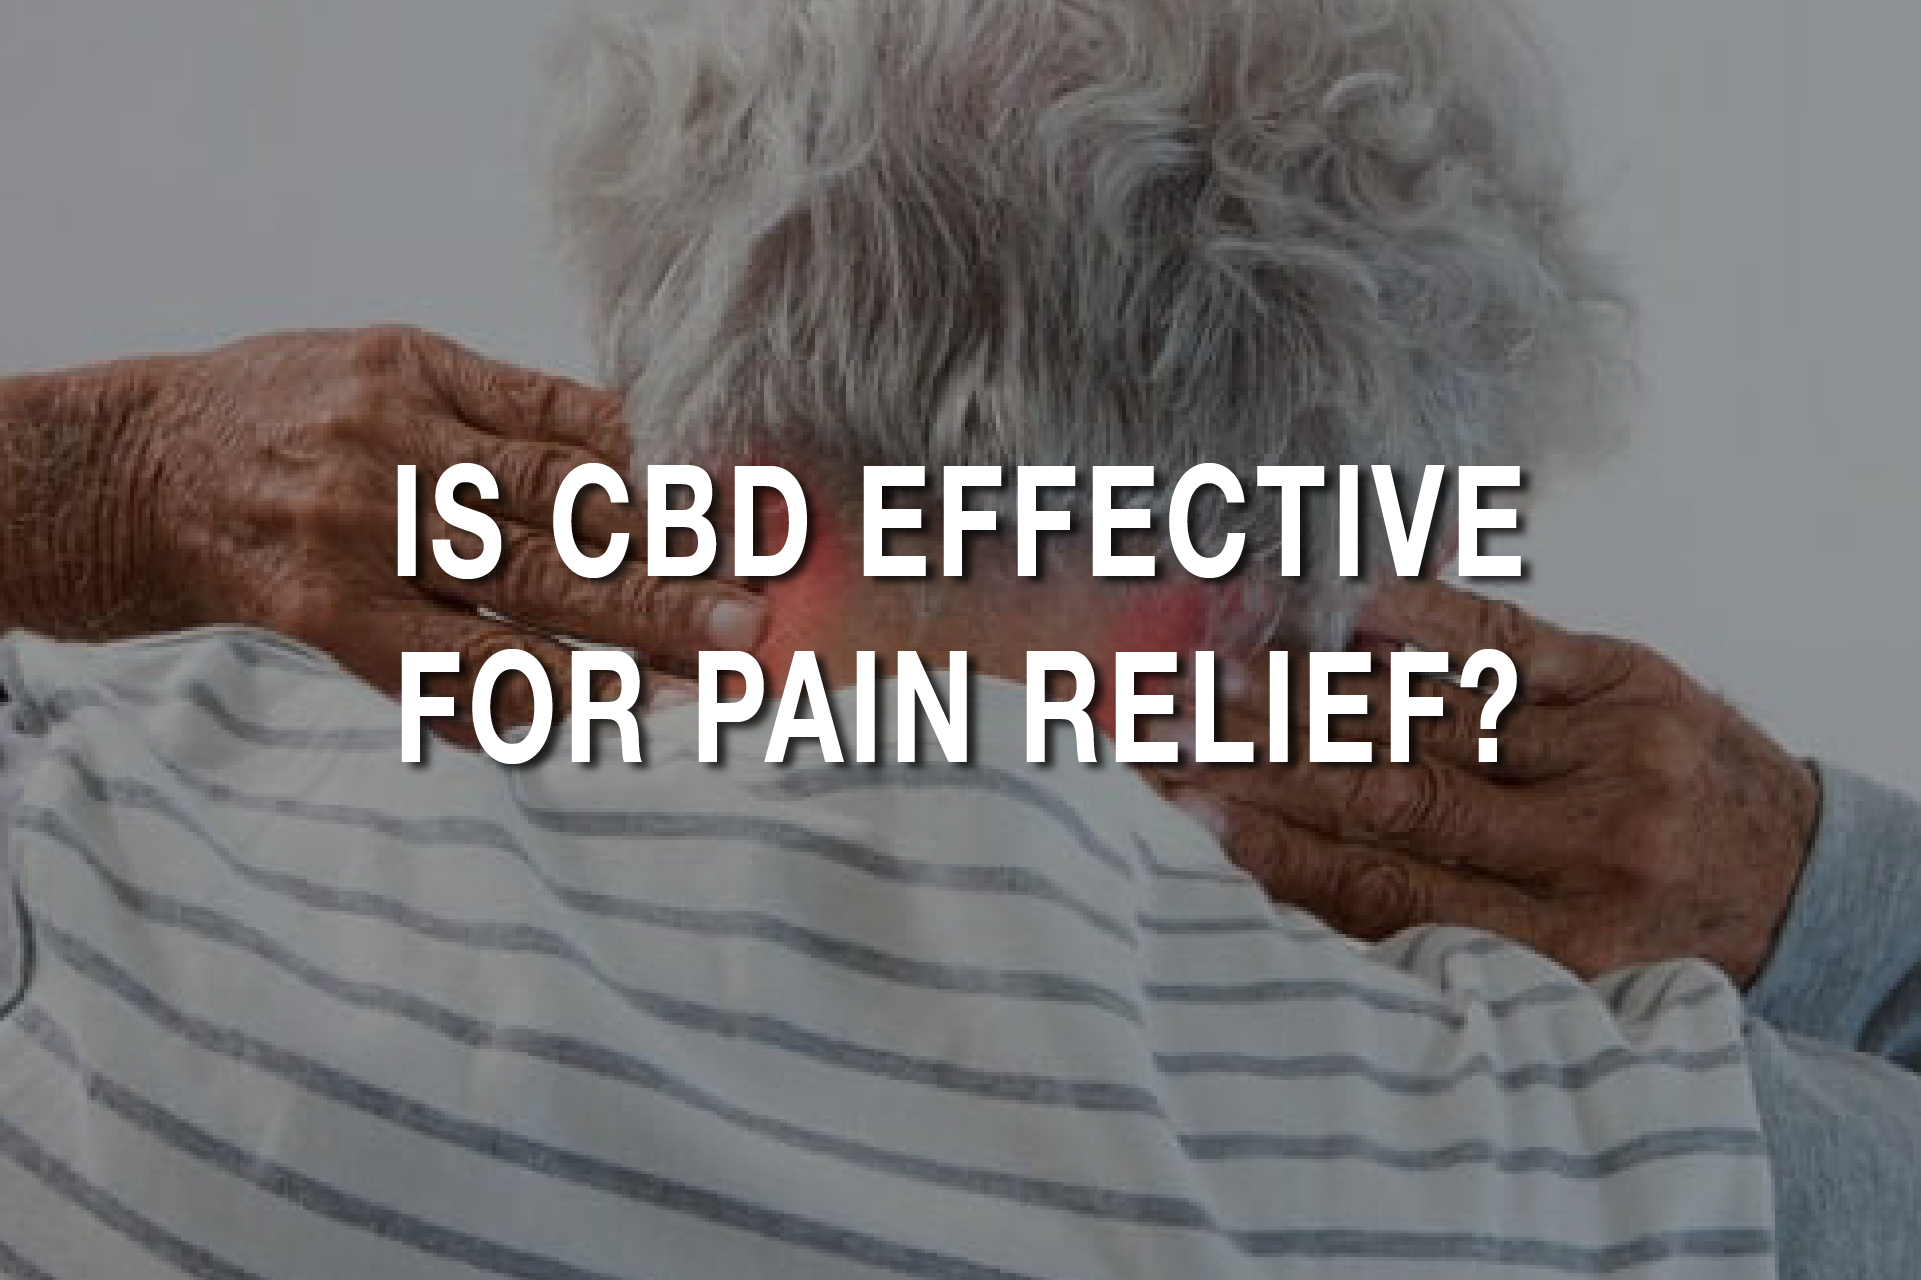 Does CBD Work For Pain Relief?